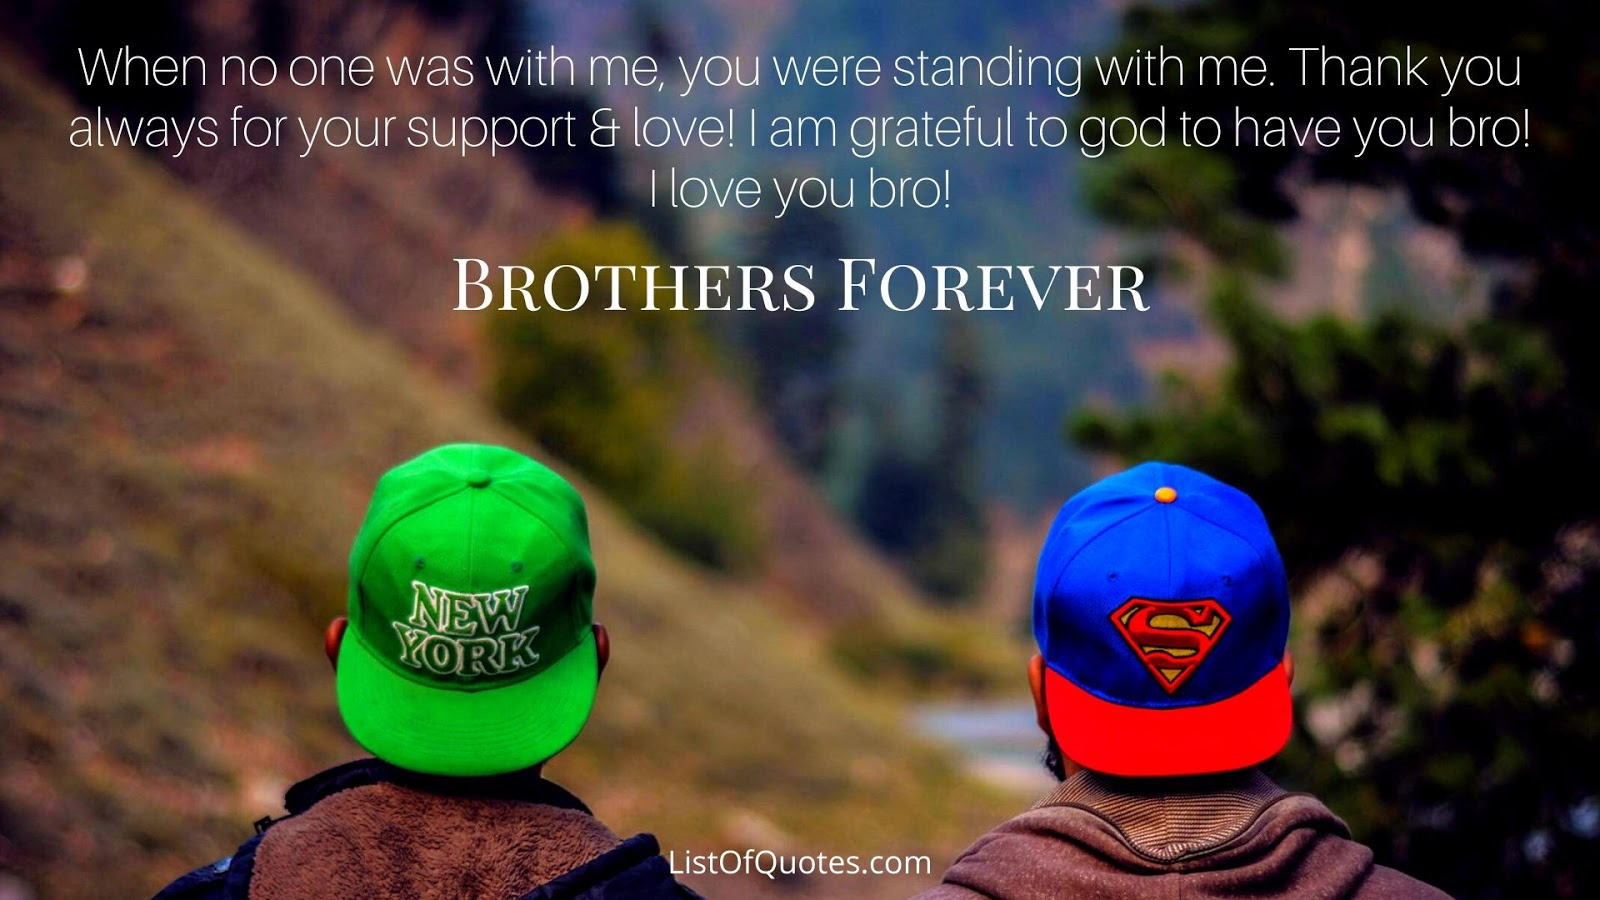 best friends forever funny friendship images with quotes messages free download